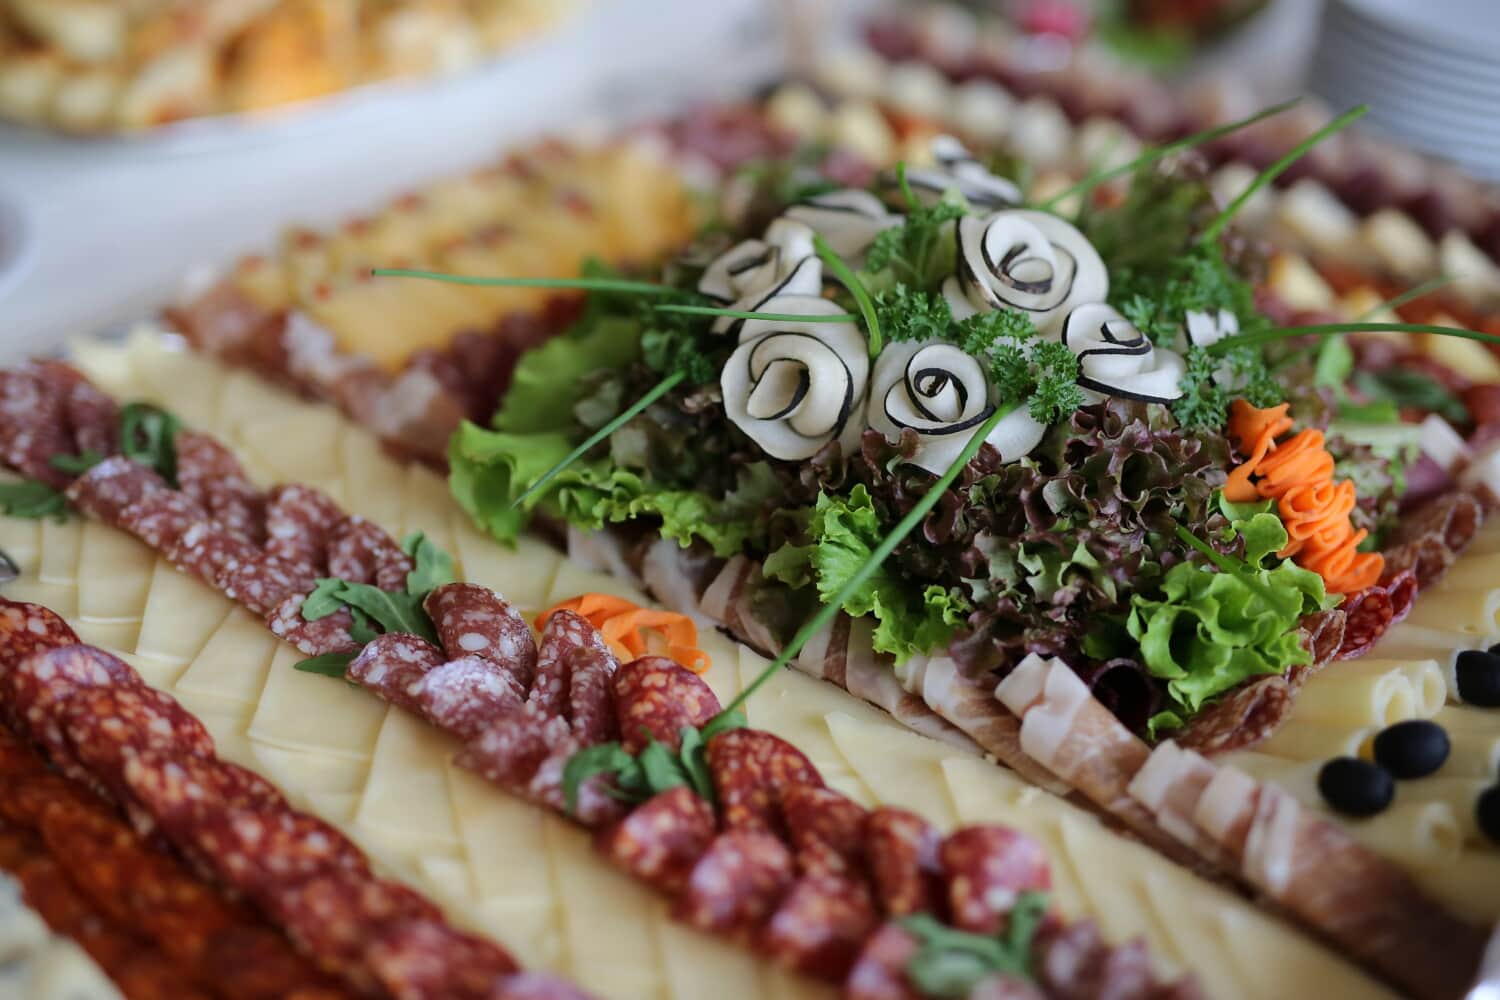 salami, appetite, appetizer, snack, buffet, sausage, delicious, food, lunch, vegetable